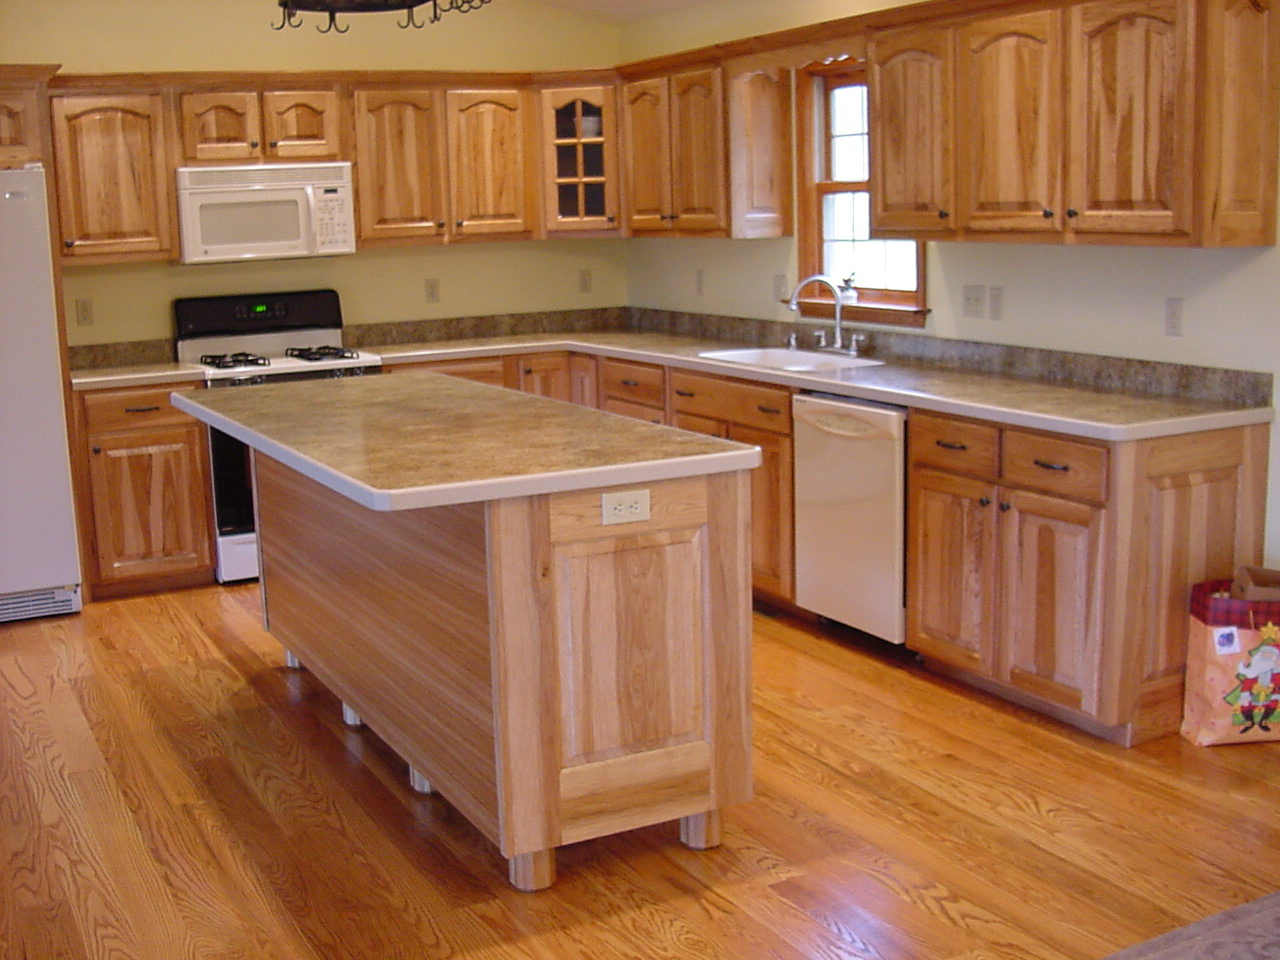 Countertop Fabricators : HOUSE CONSTRUCTION IN INDIA: KITCHENS COUNTERTOP MATERIALS